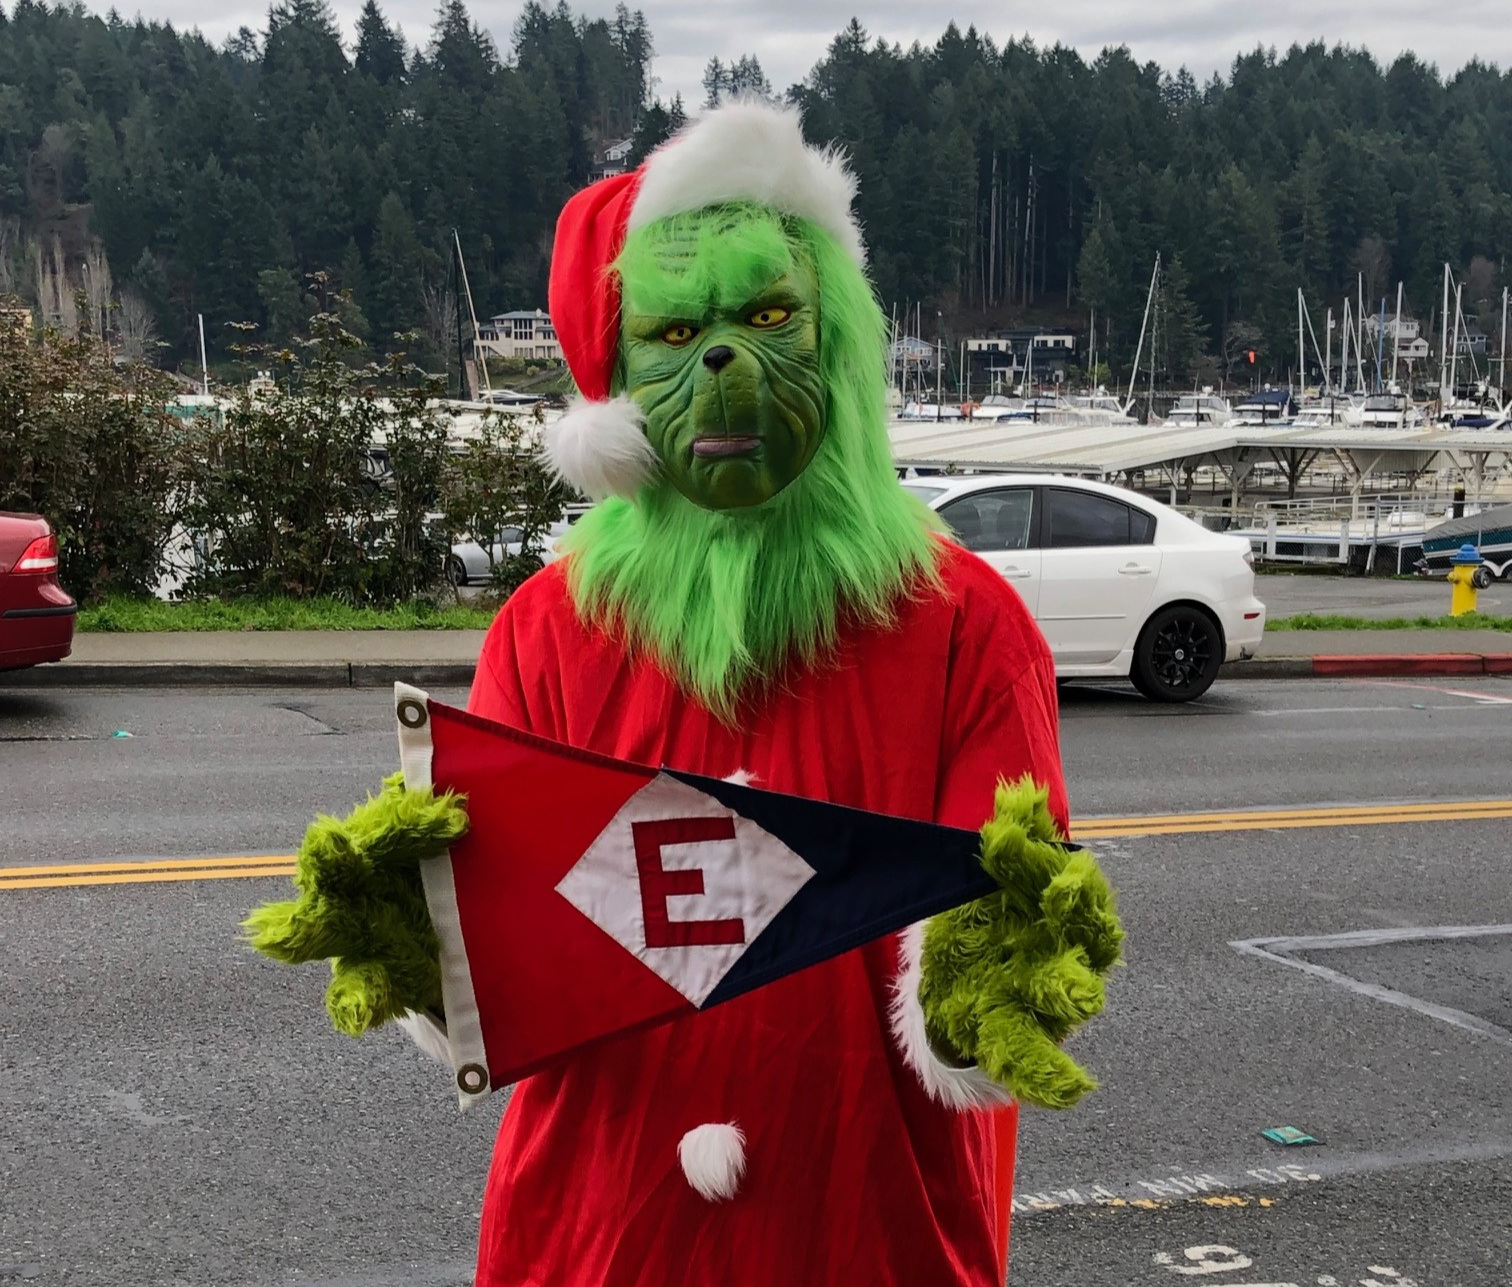 He might not have Christmas spirit, but the Grinch does have EYC spirit!